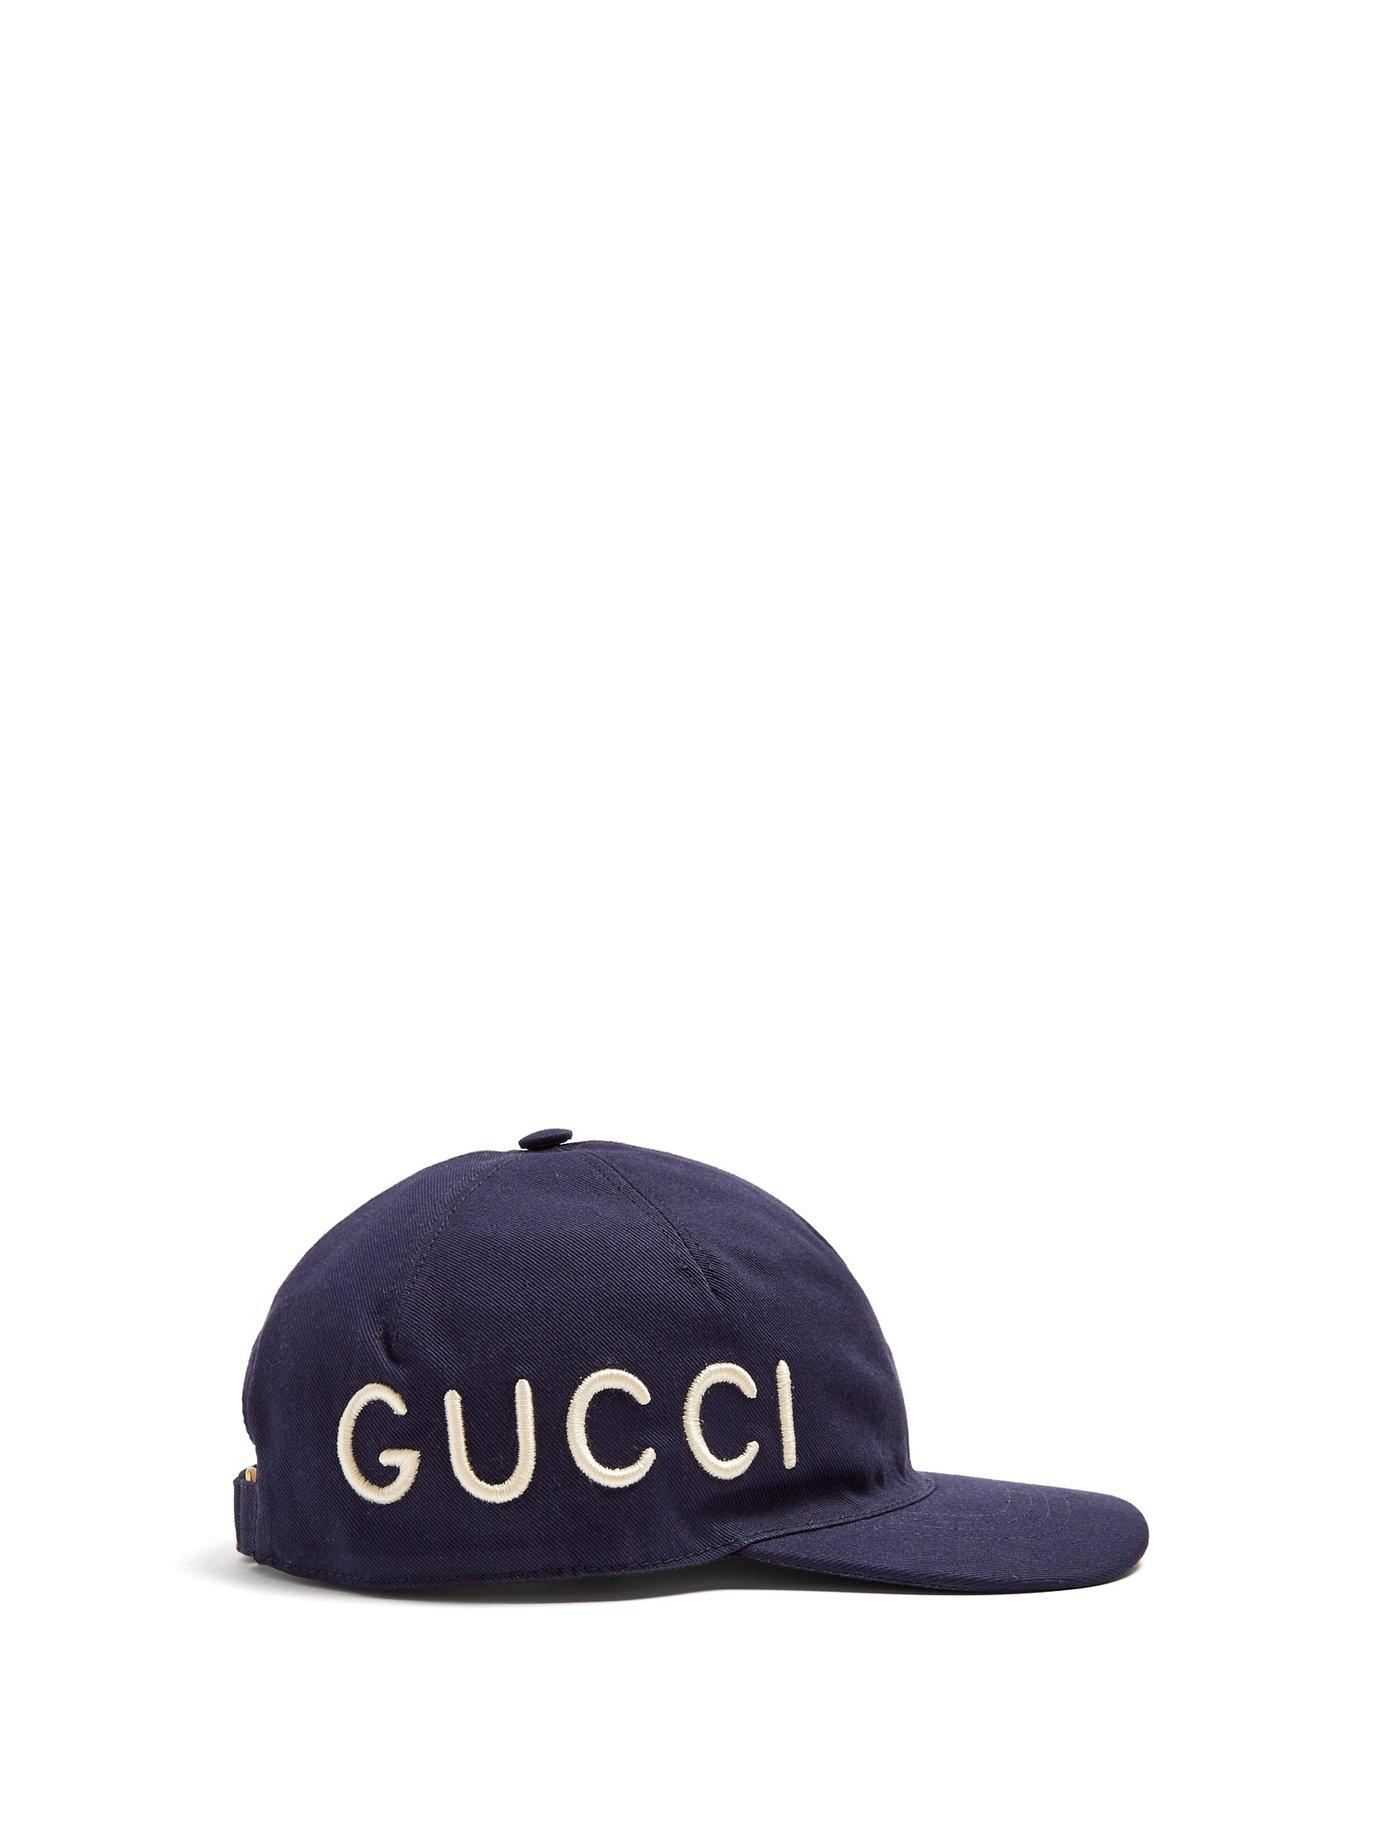 dc4c93bfa Lyst - Gucci Logo Embroidered Cotton Cap in Blue for Men